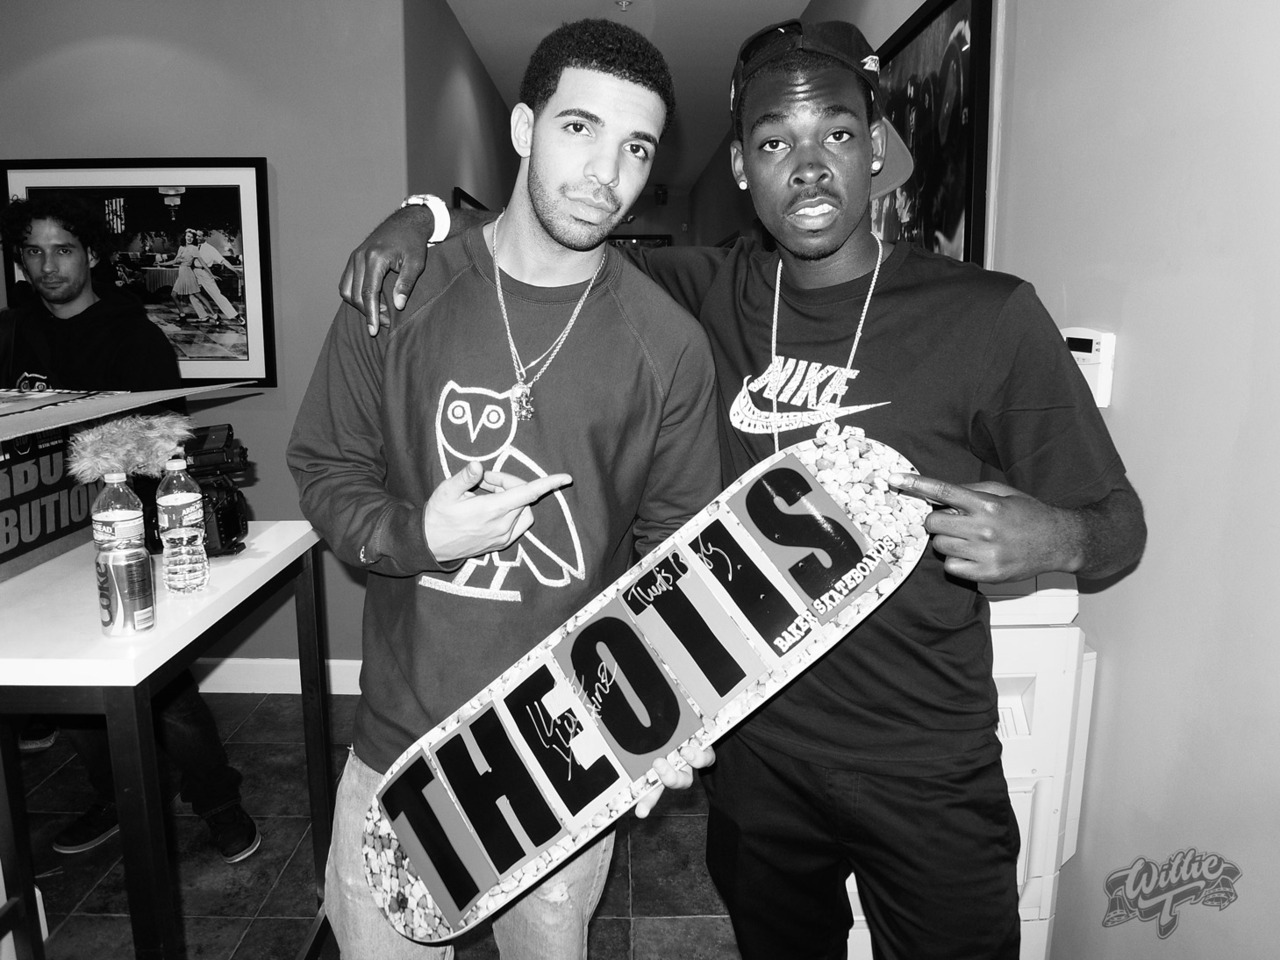 Theotis and Drake Chilling on set for 2chainz music video